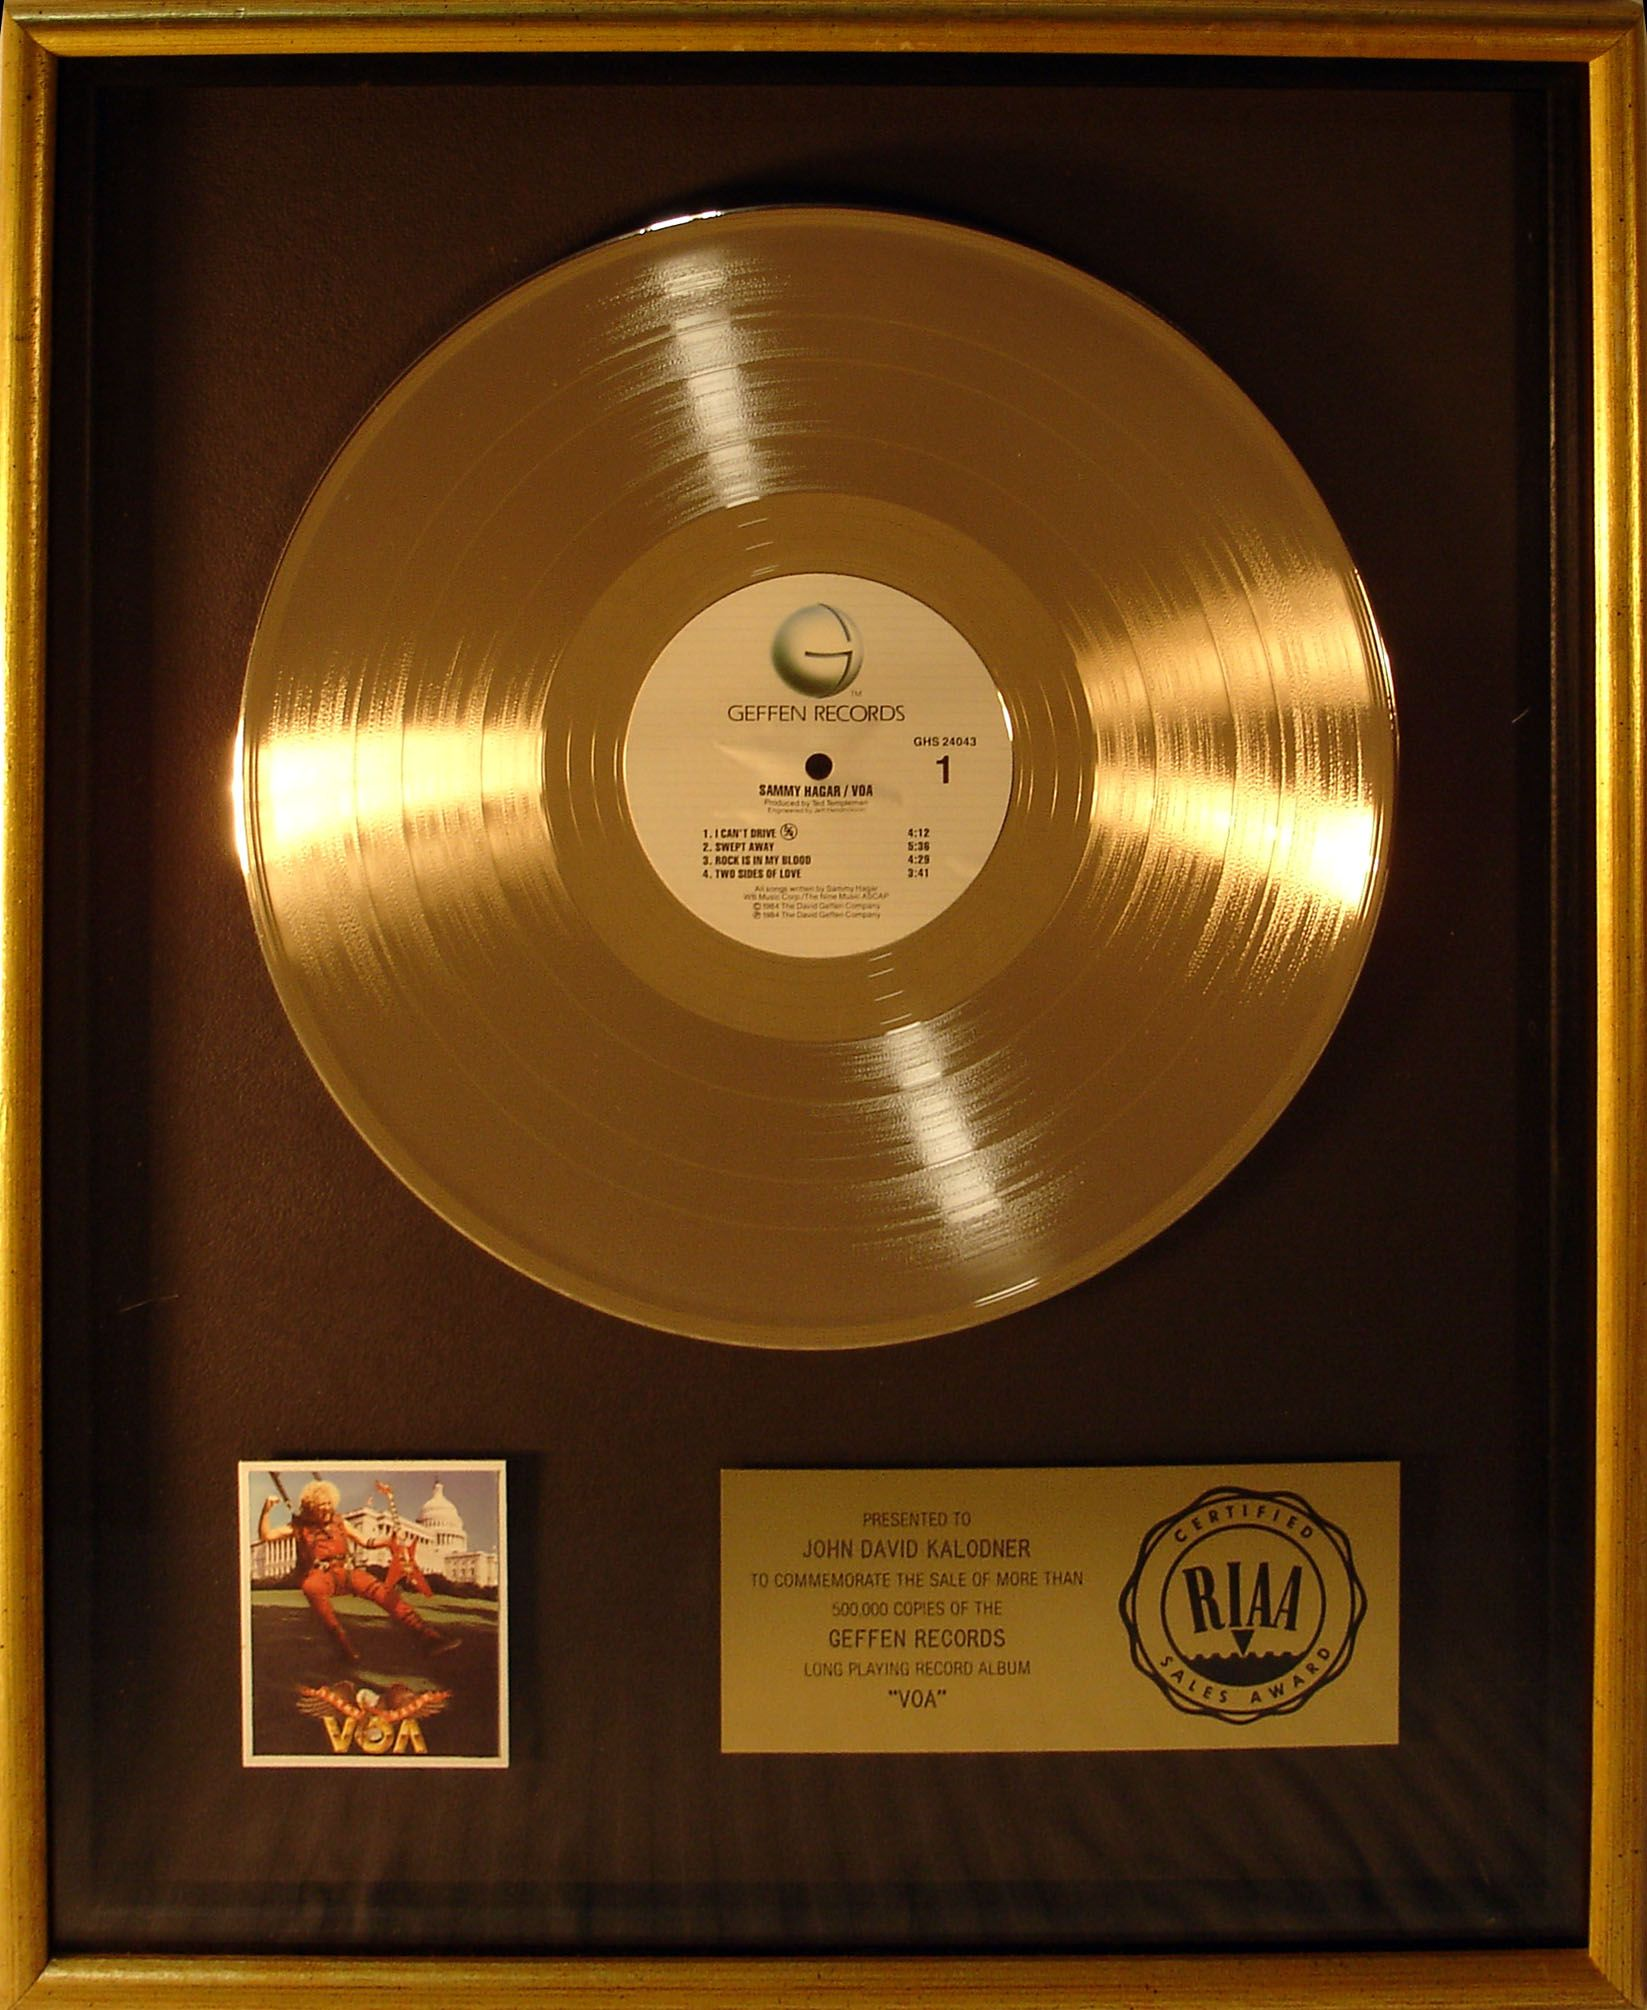 Gold Record Award Presented To Jdk For 500 000 Sales Of Sammy Hagar S Voa Album Records Rud Recording Artists